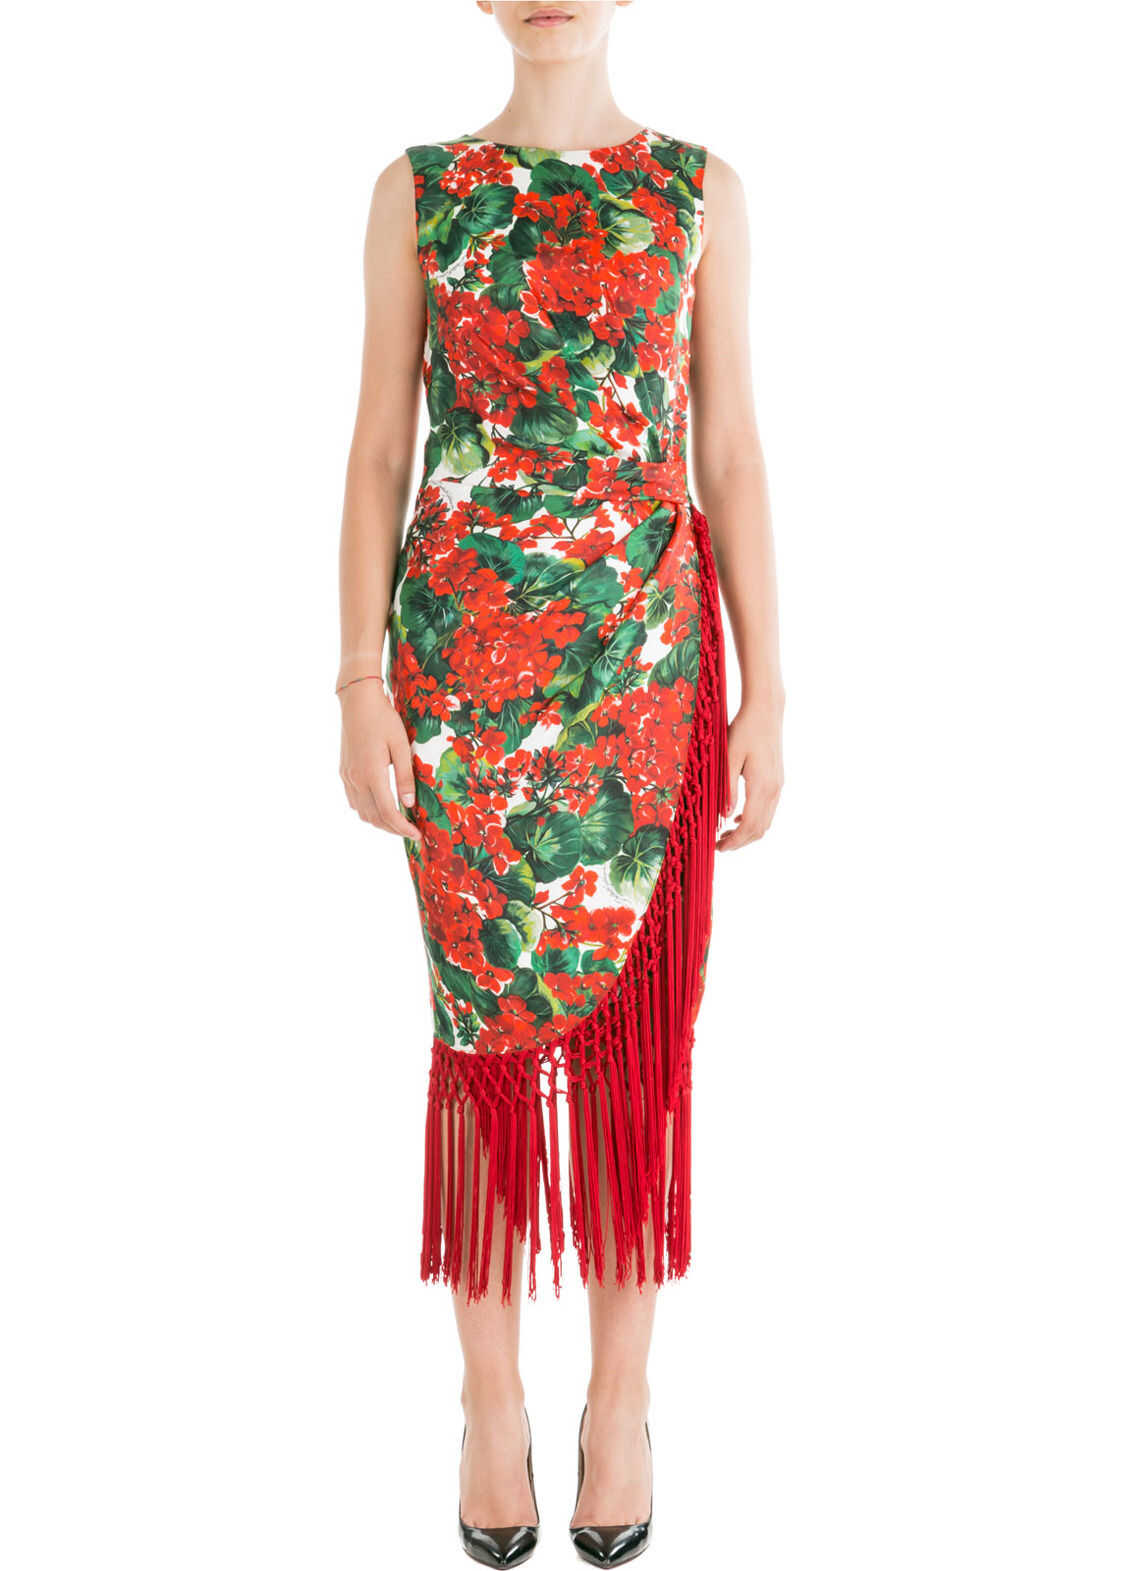 Dolce & Gabbana Dress Sleeveless Red